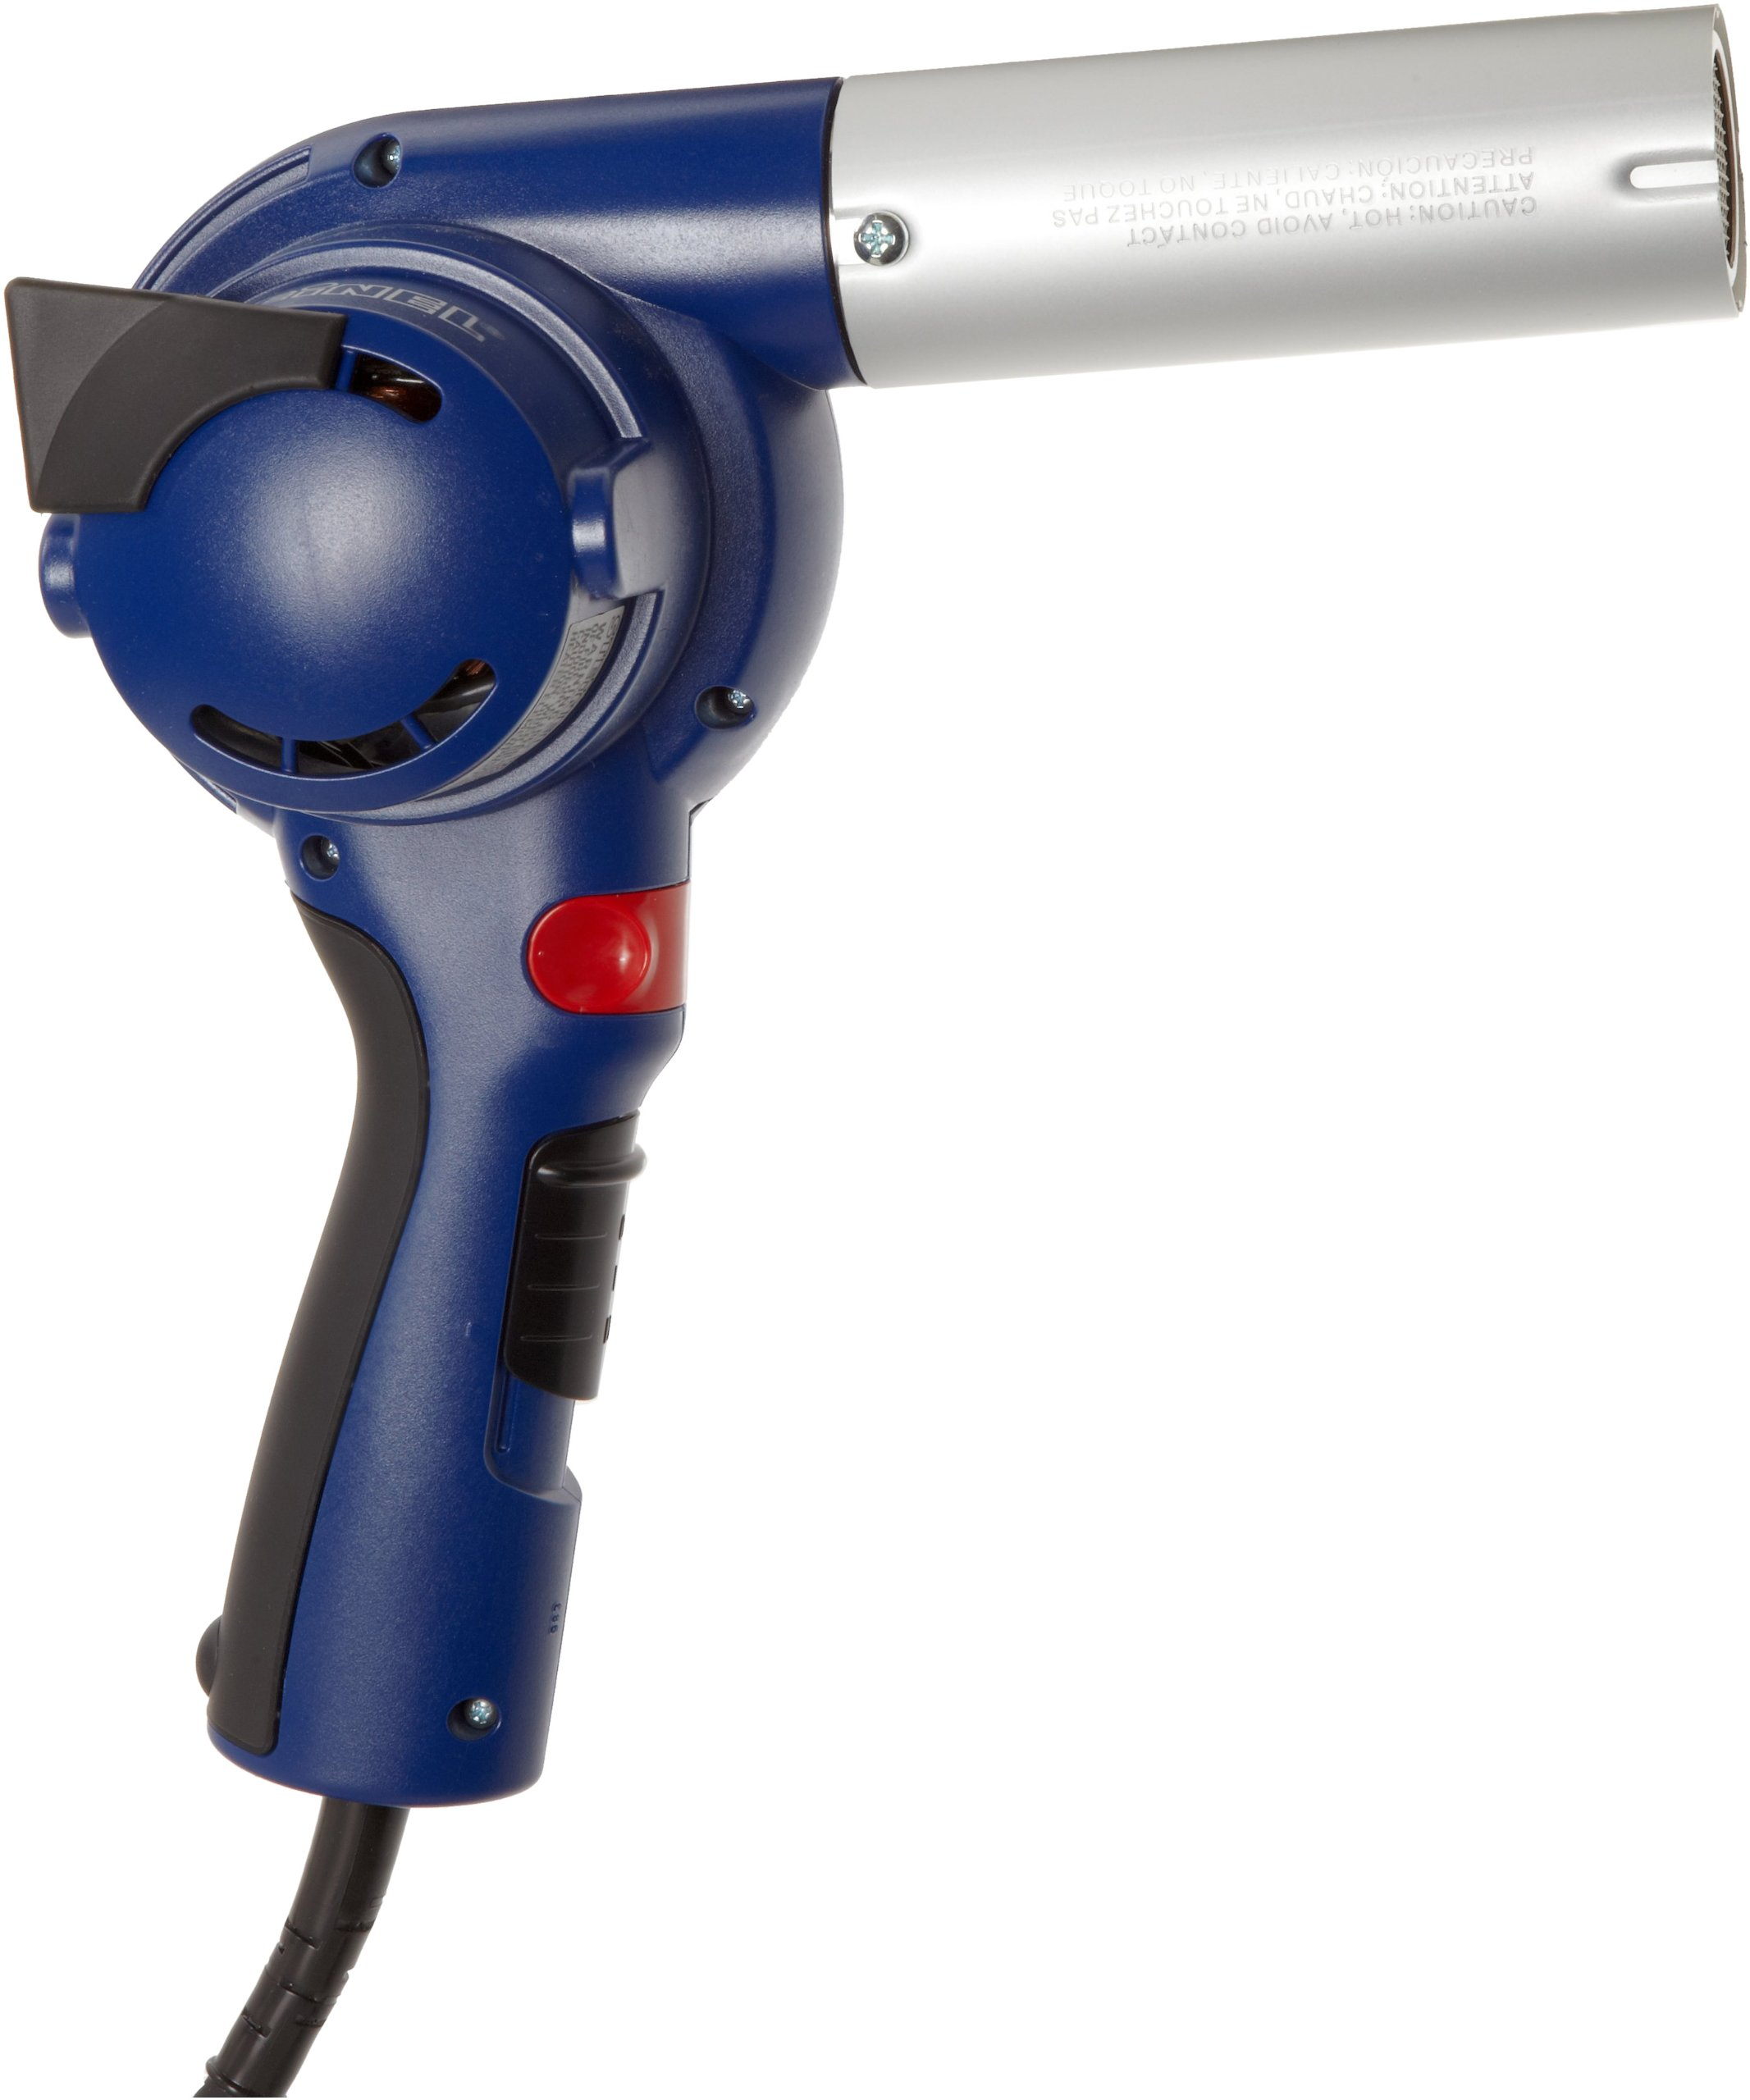 Steinel HB 1750 - Powerful turbine blower with air delivery rate up to 23 cfm, All Color coded keys for the right temperature every time, Maintenance free factory sealed motor, Lightweight, Heat Gun with well balanced design Soft Grip Handle and convenien